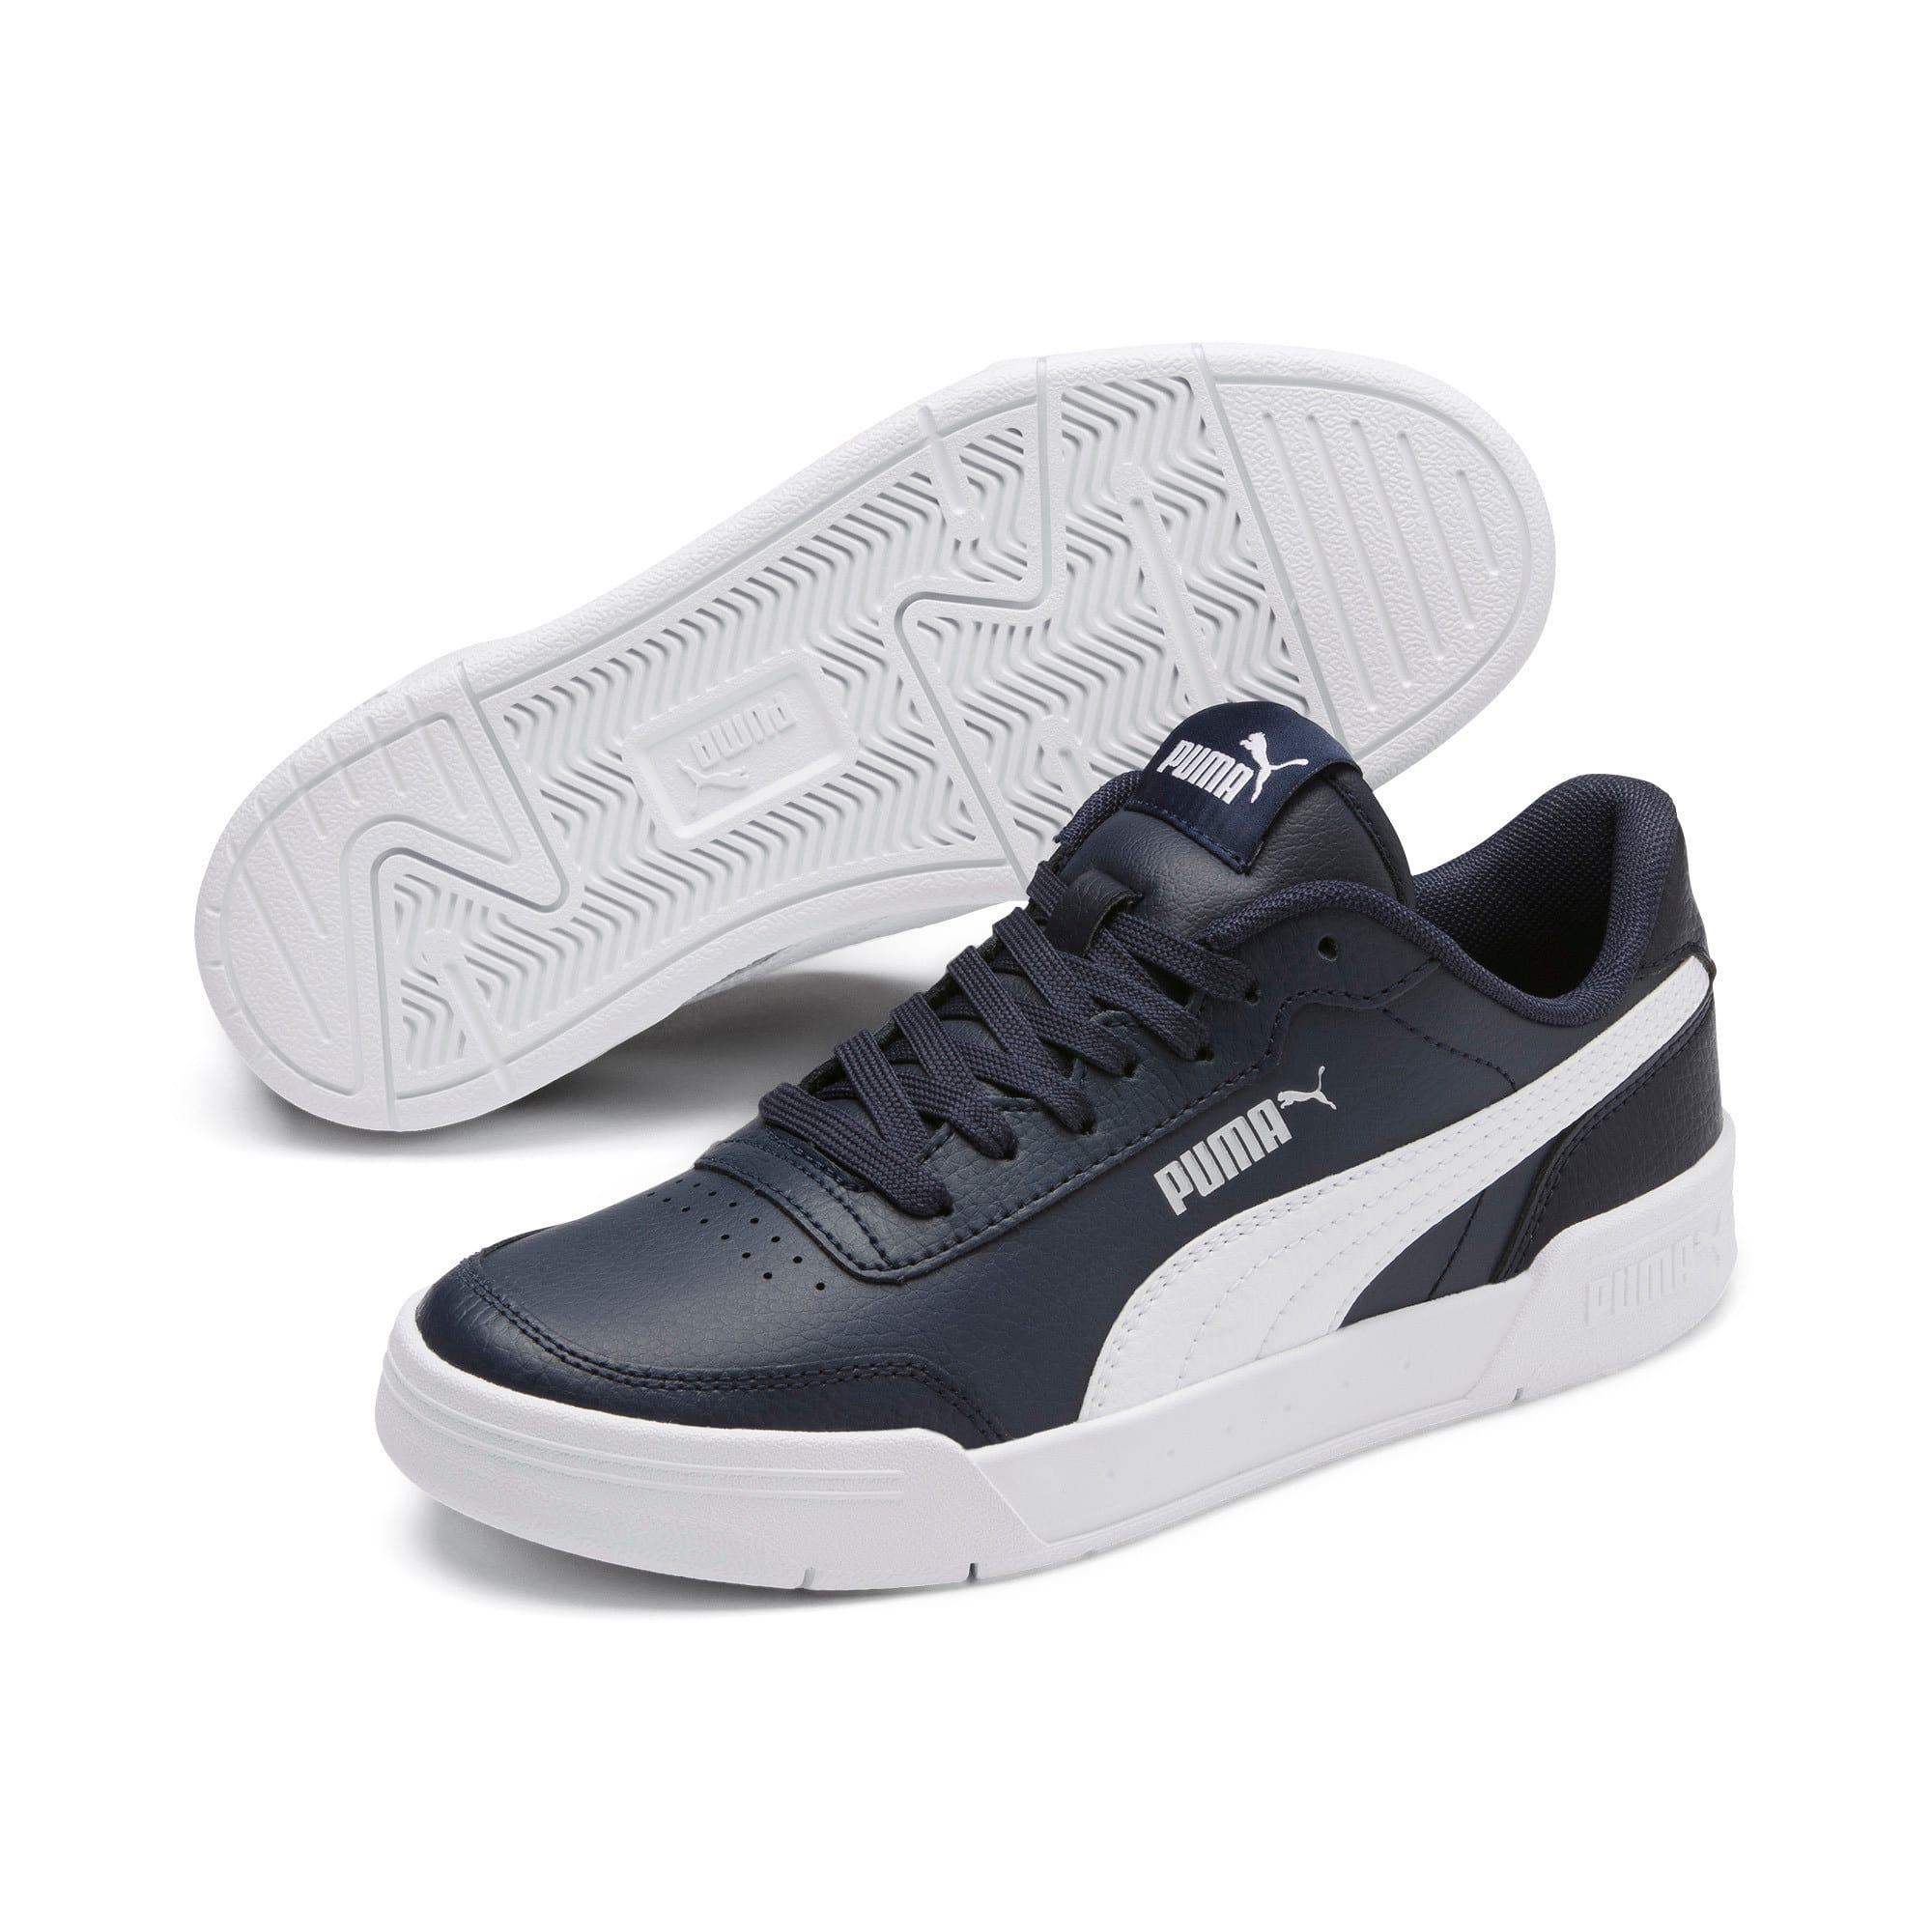 Thumbnail 2 of Caracal Youth Trainers, Peacoat-P. White-Puma Silver, medium-IND